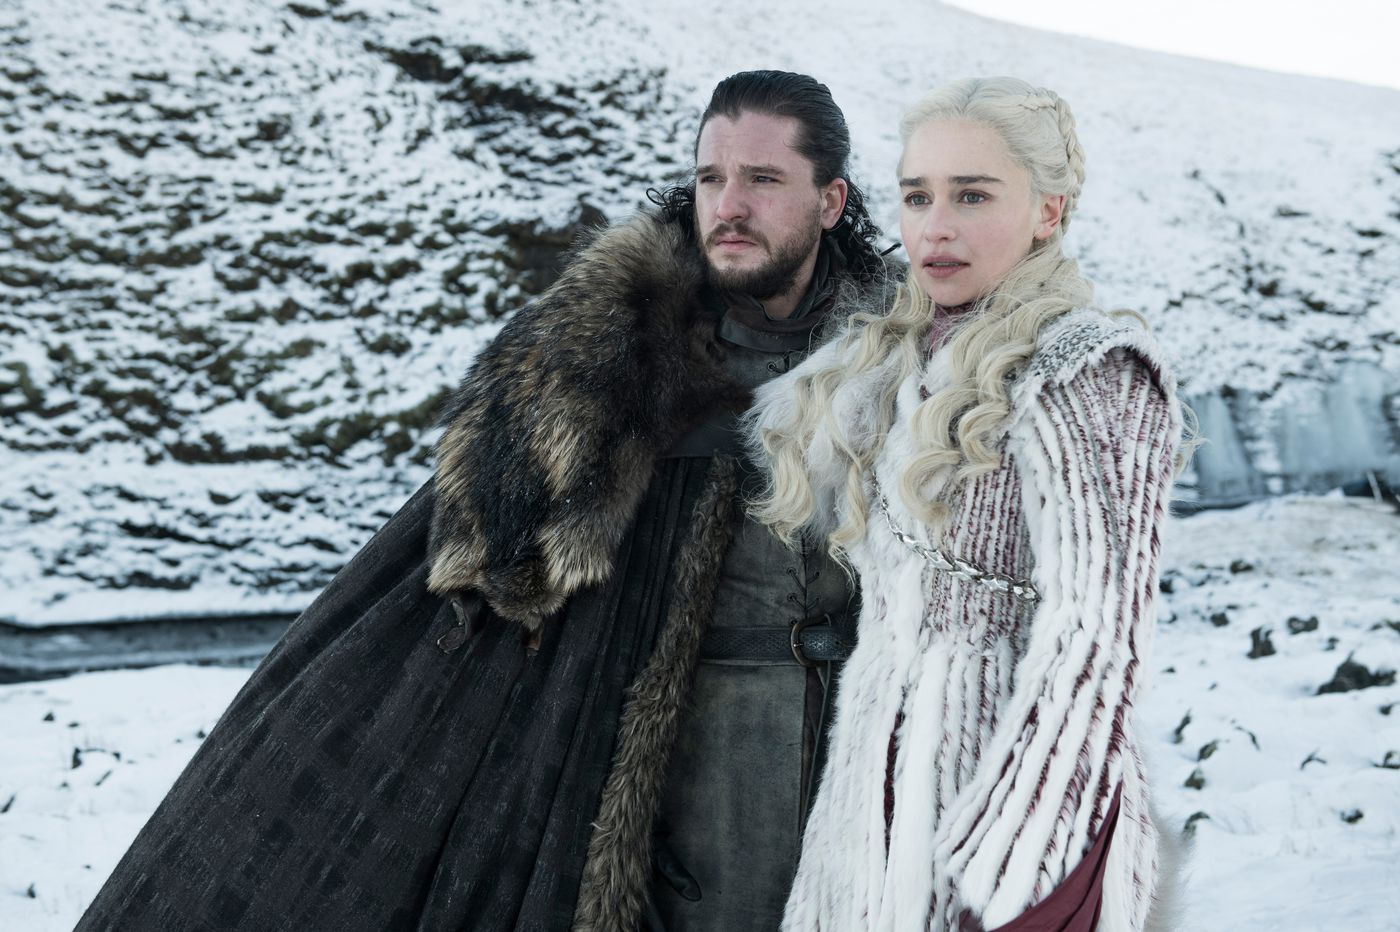 'Game of Thrones' offers medical lessons in genetics, incest, and infertility